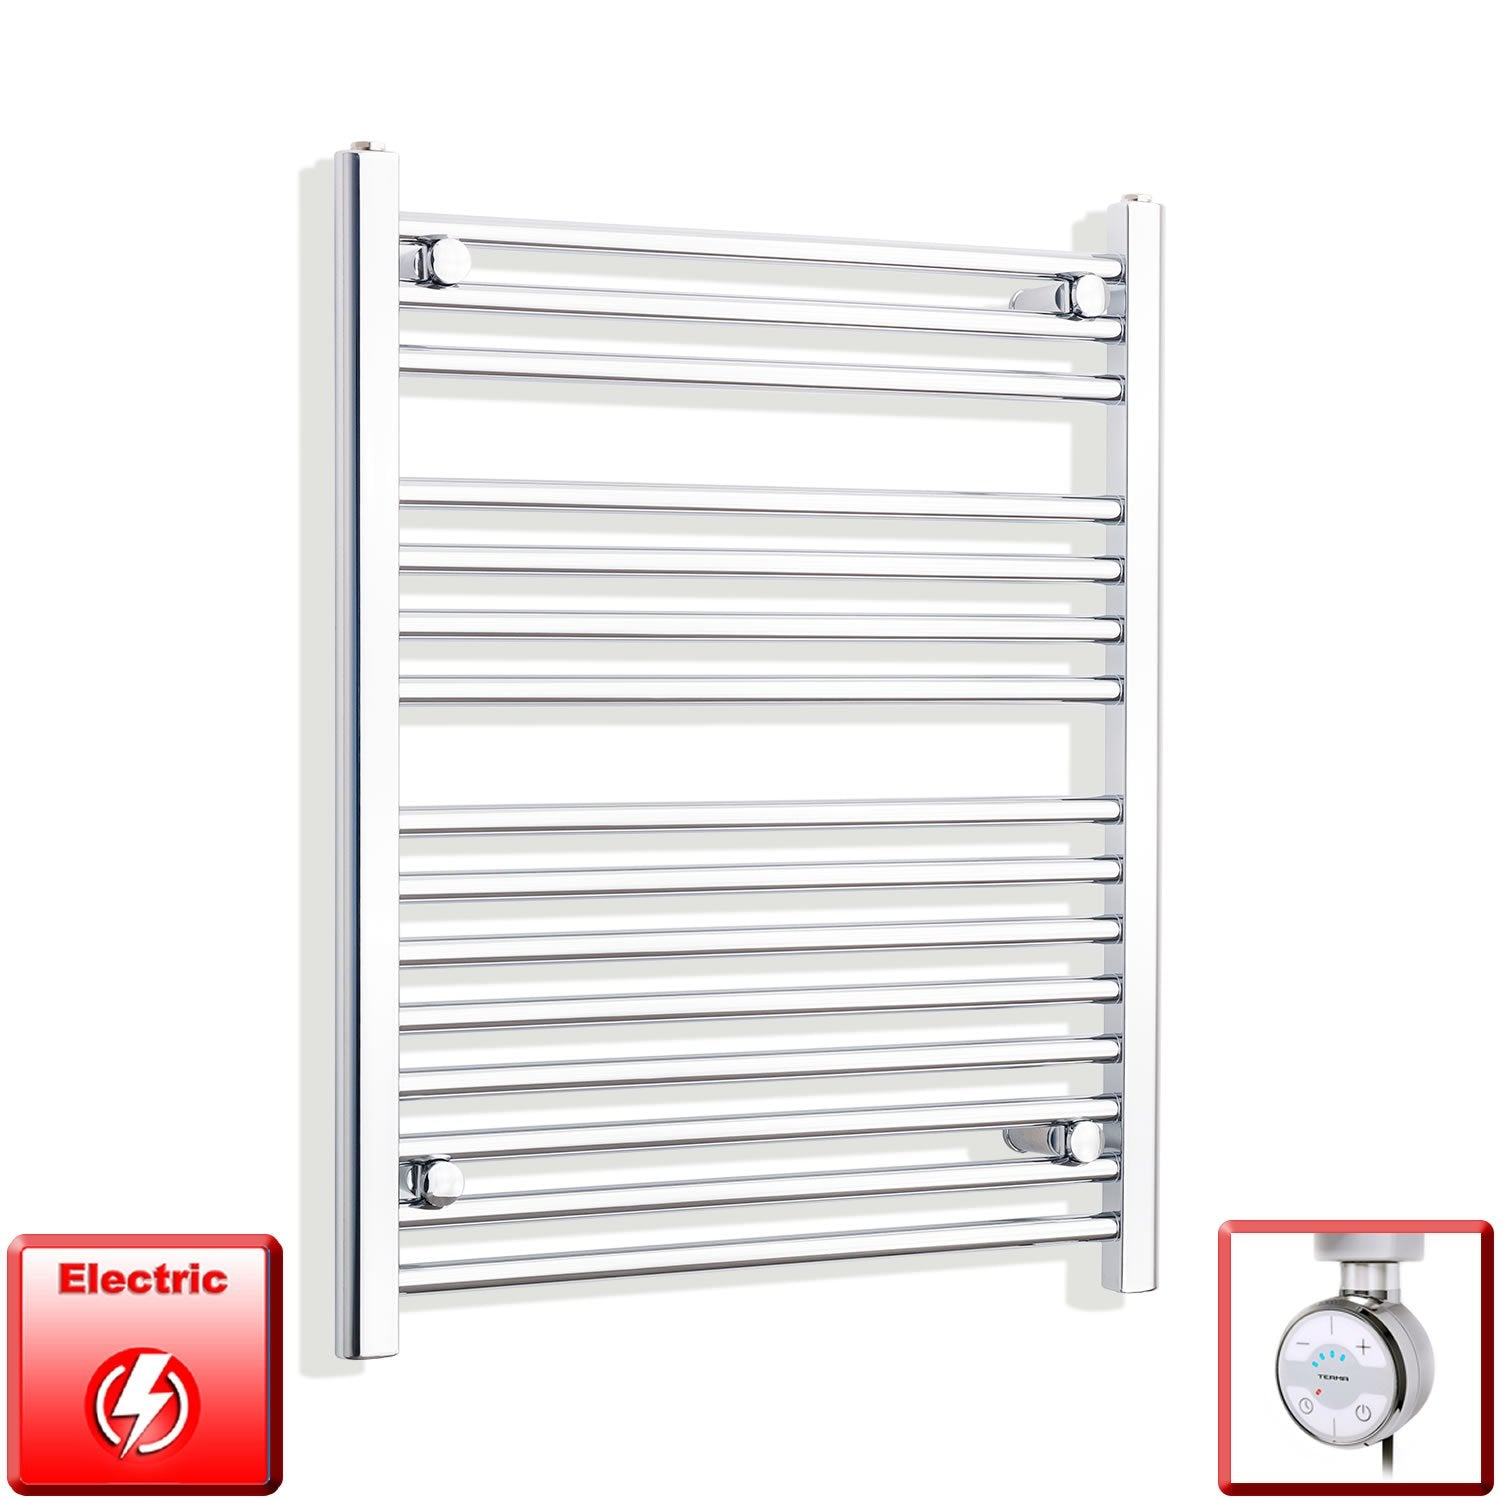 650mm Wide 800mm High Flat Chrome Pre-Filled Electric Heated Towel Rail Radiator HTR,MOA Thermostatic Element